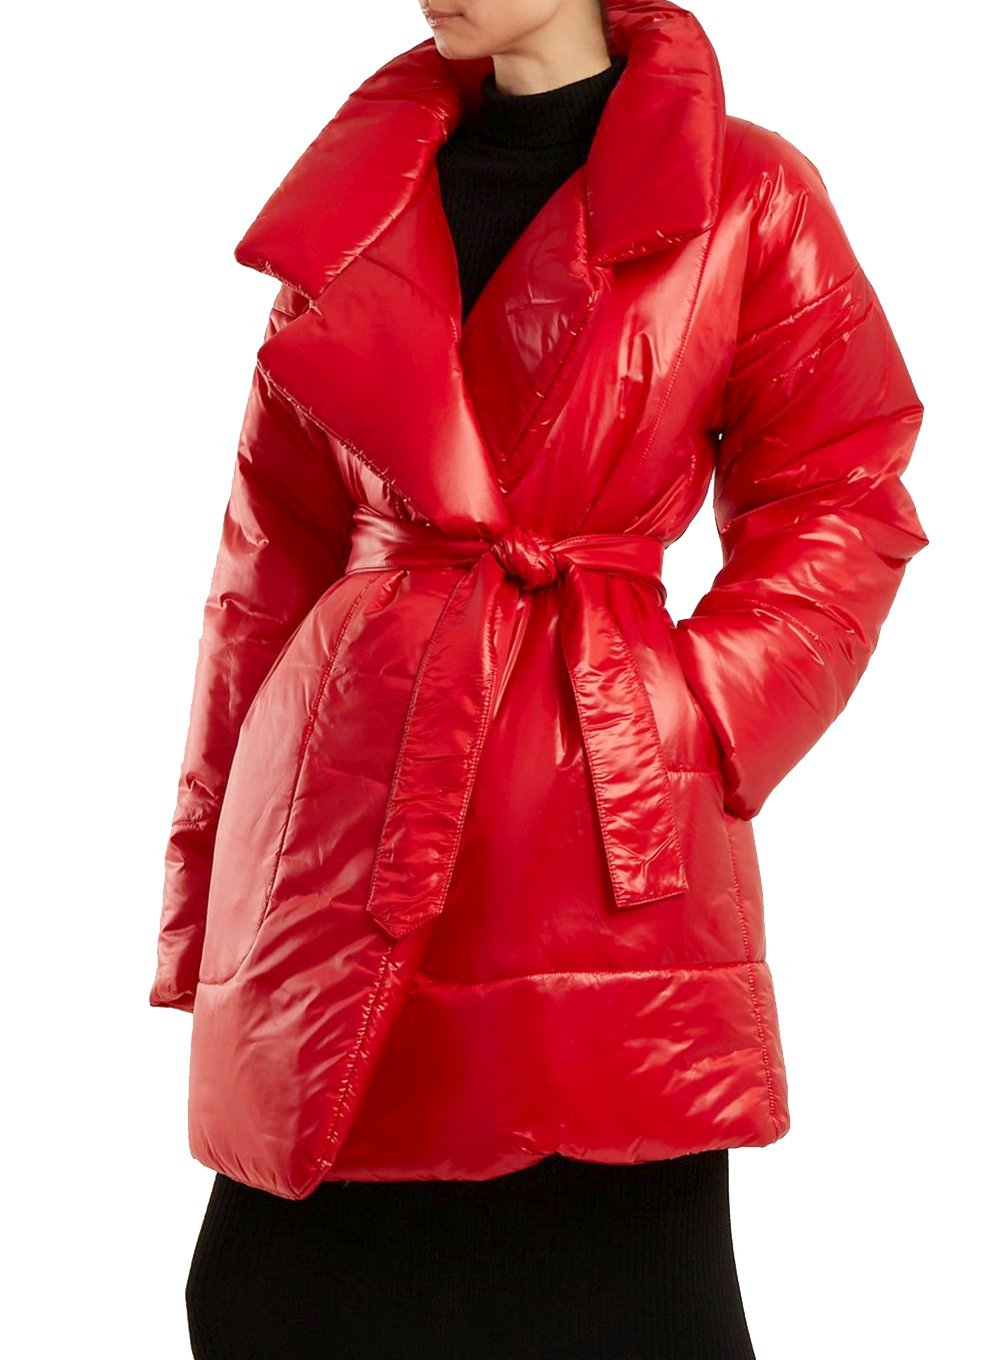 NORMA KAMALI | Sleeping Bag Coat in Red